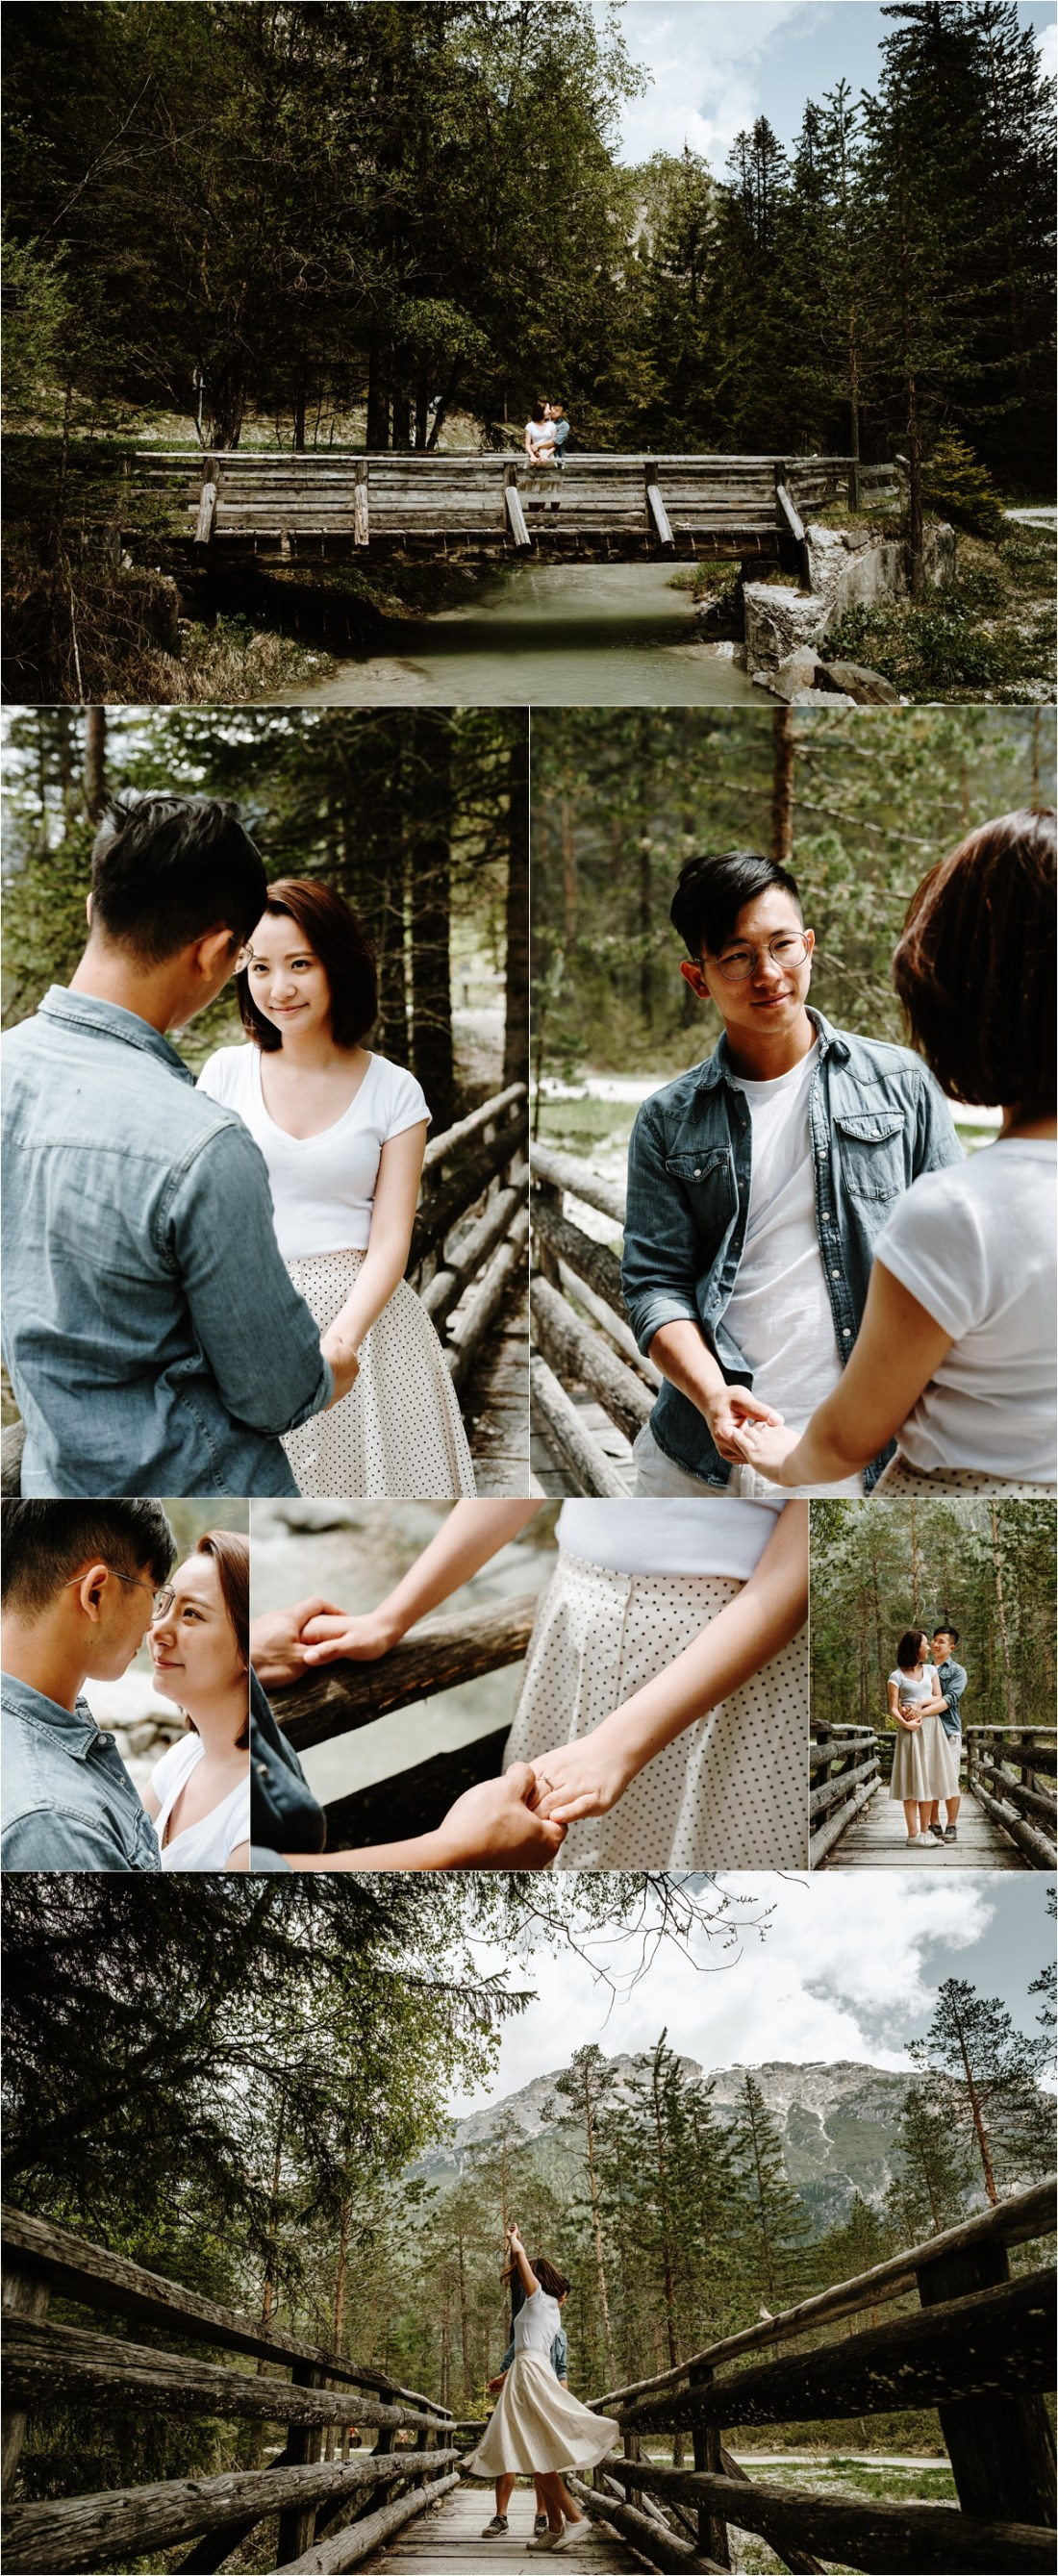 An engagement shoot on a wooden foot bridge in the Italian Alps. Photo by Wild Connections Photography Dolomites Wedding Photographer